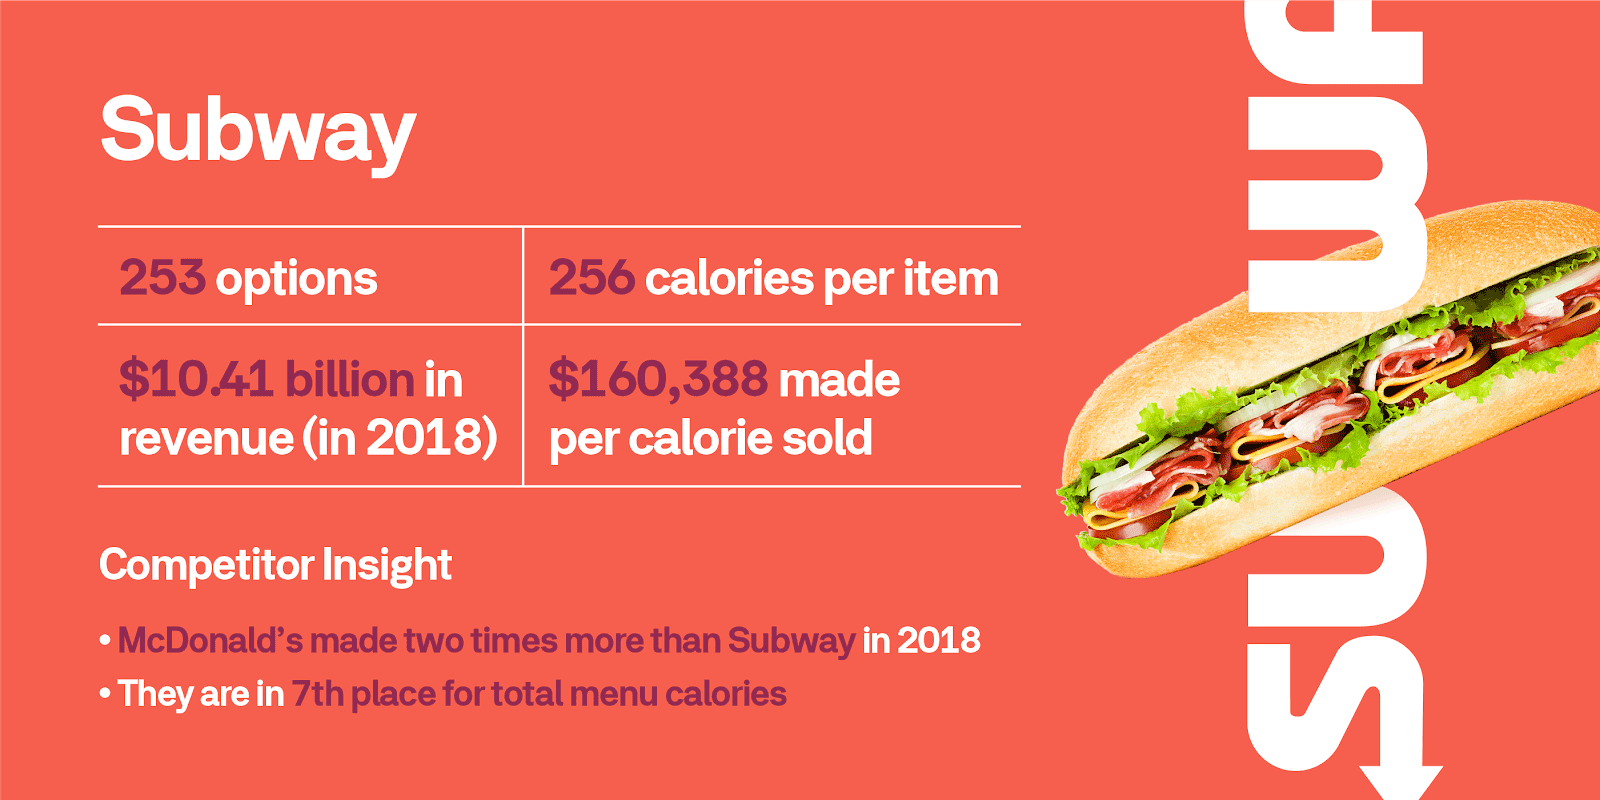 Low Calorie and High Fortune at Subway